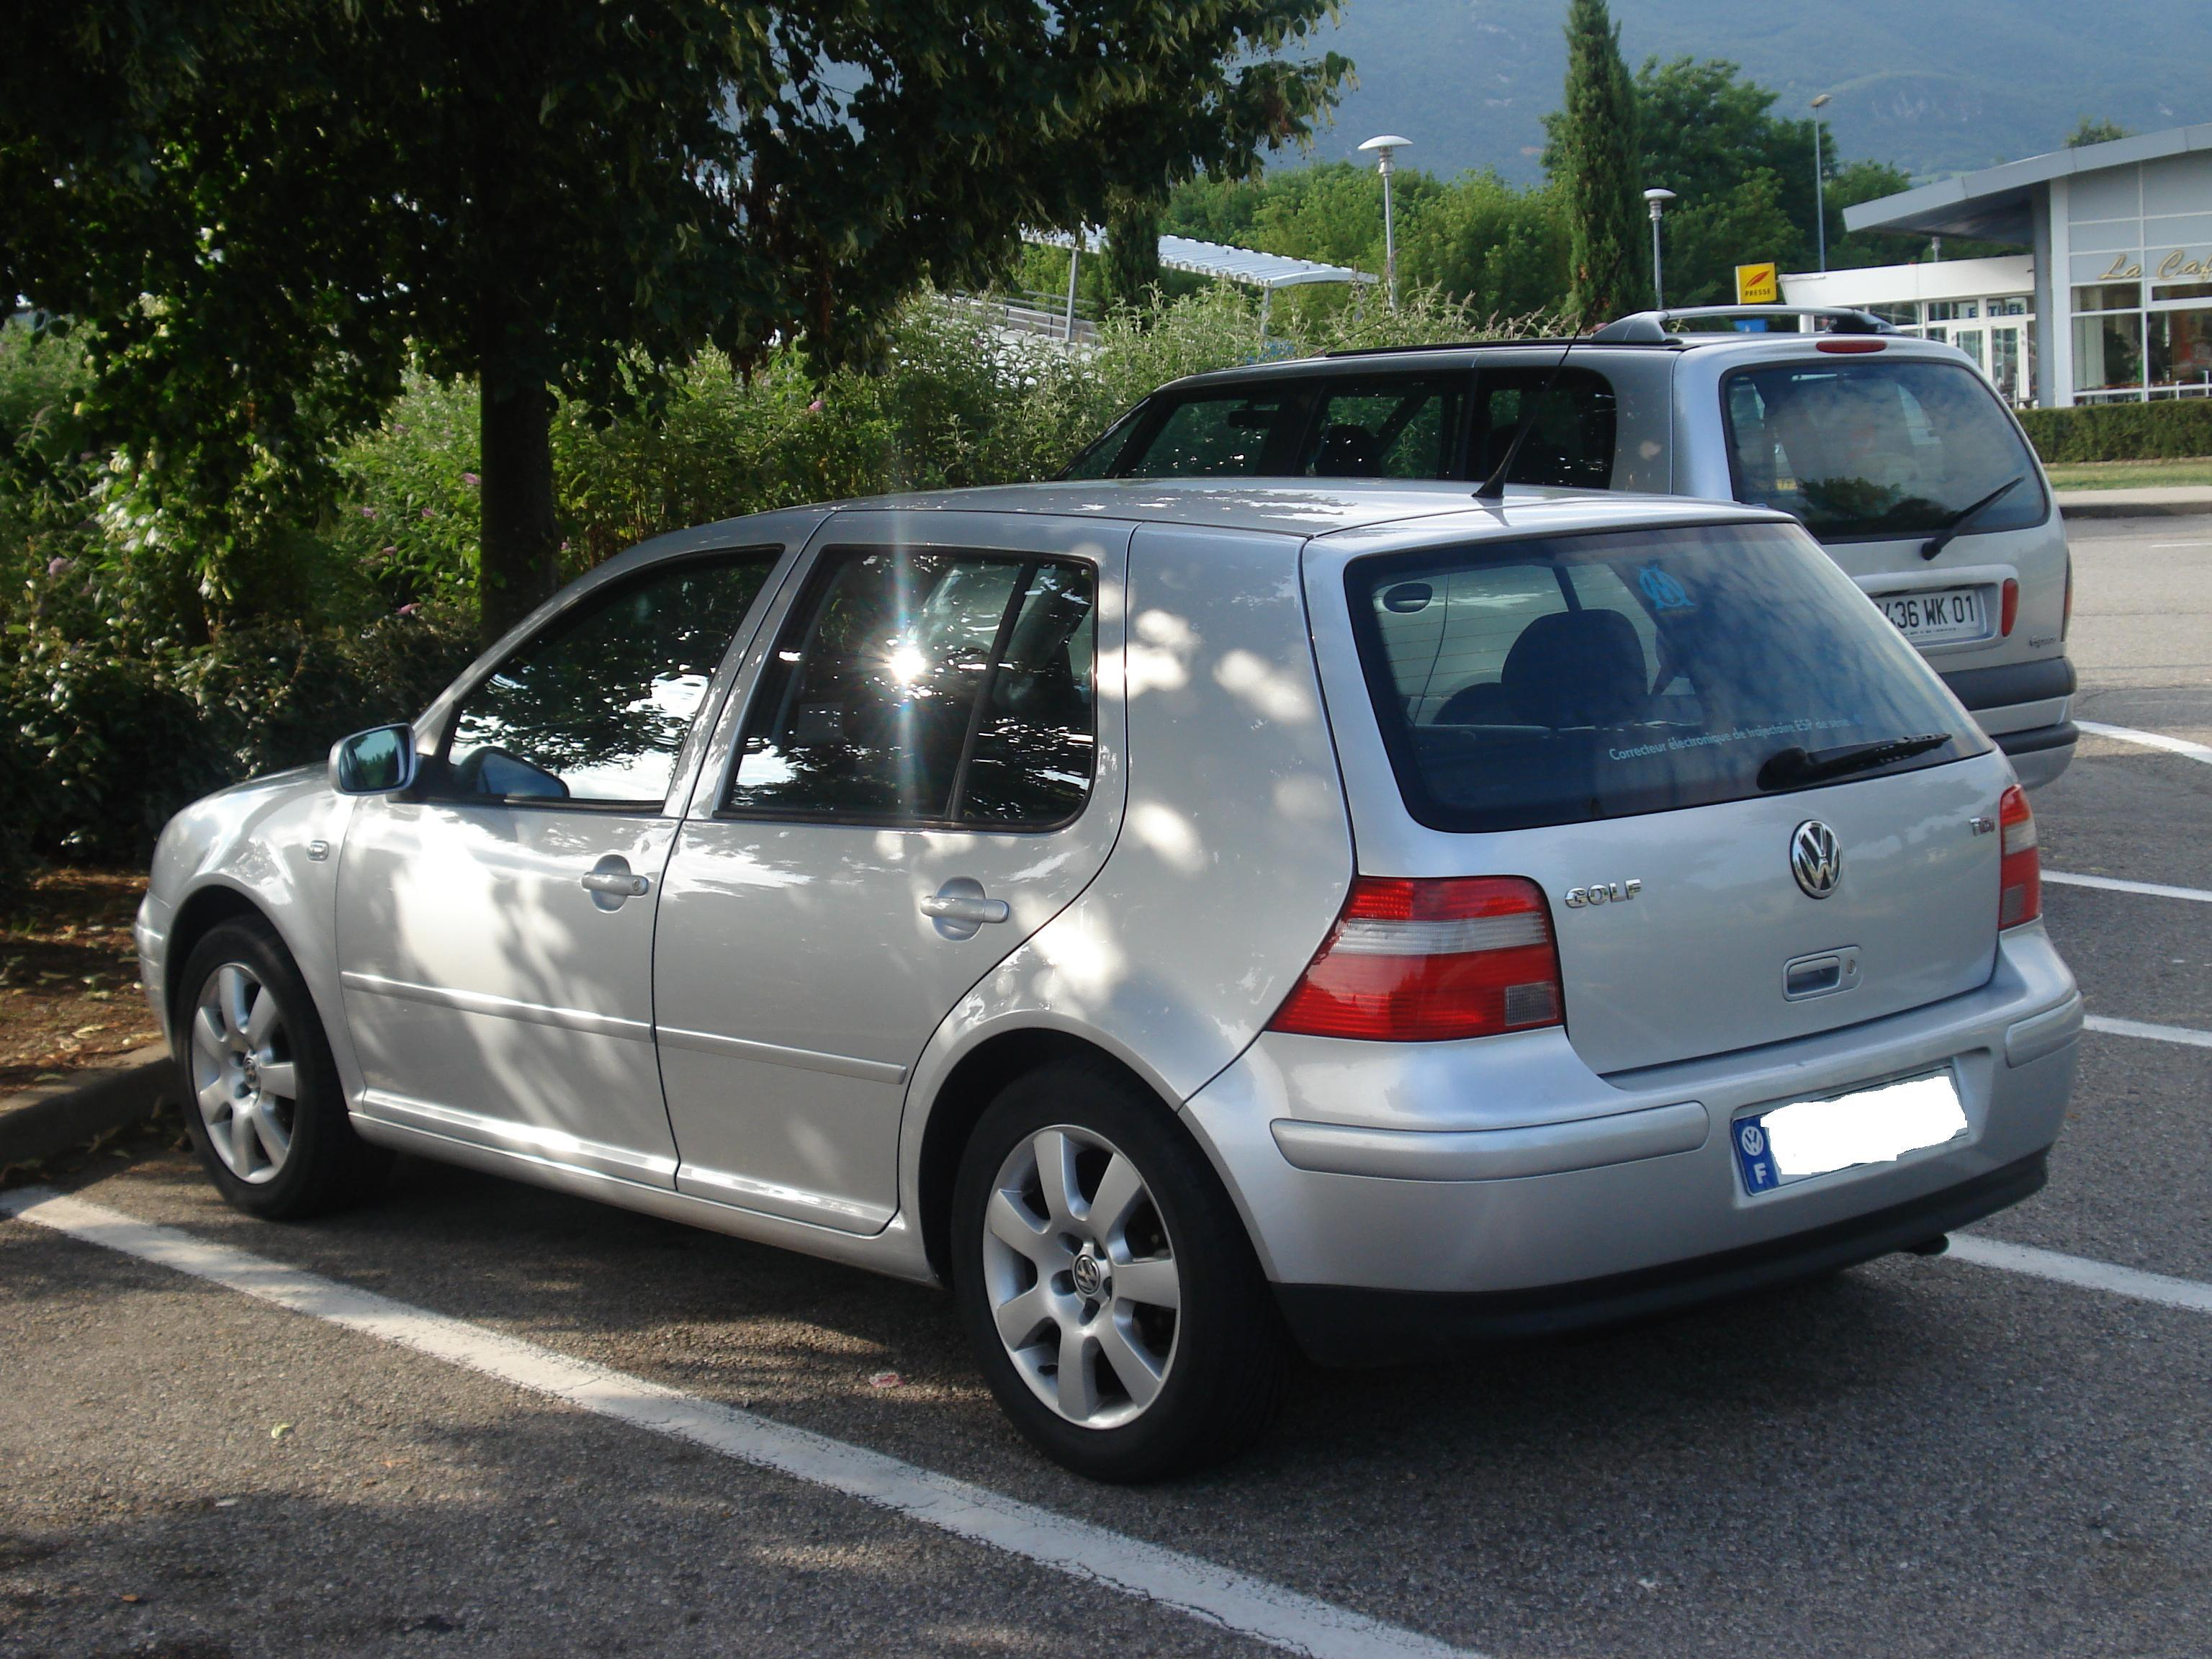 golf 4 tdi 130 match ii de sebtdi   garage des golf iv tdi